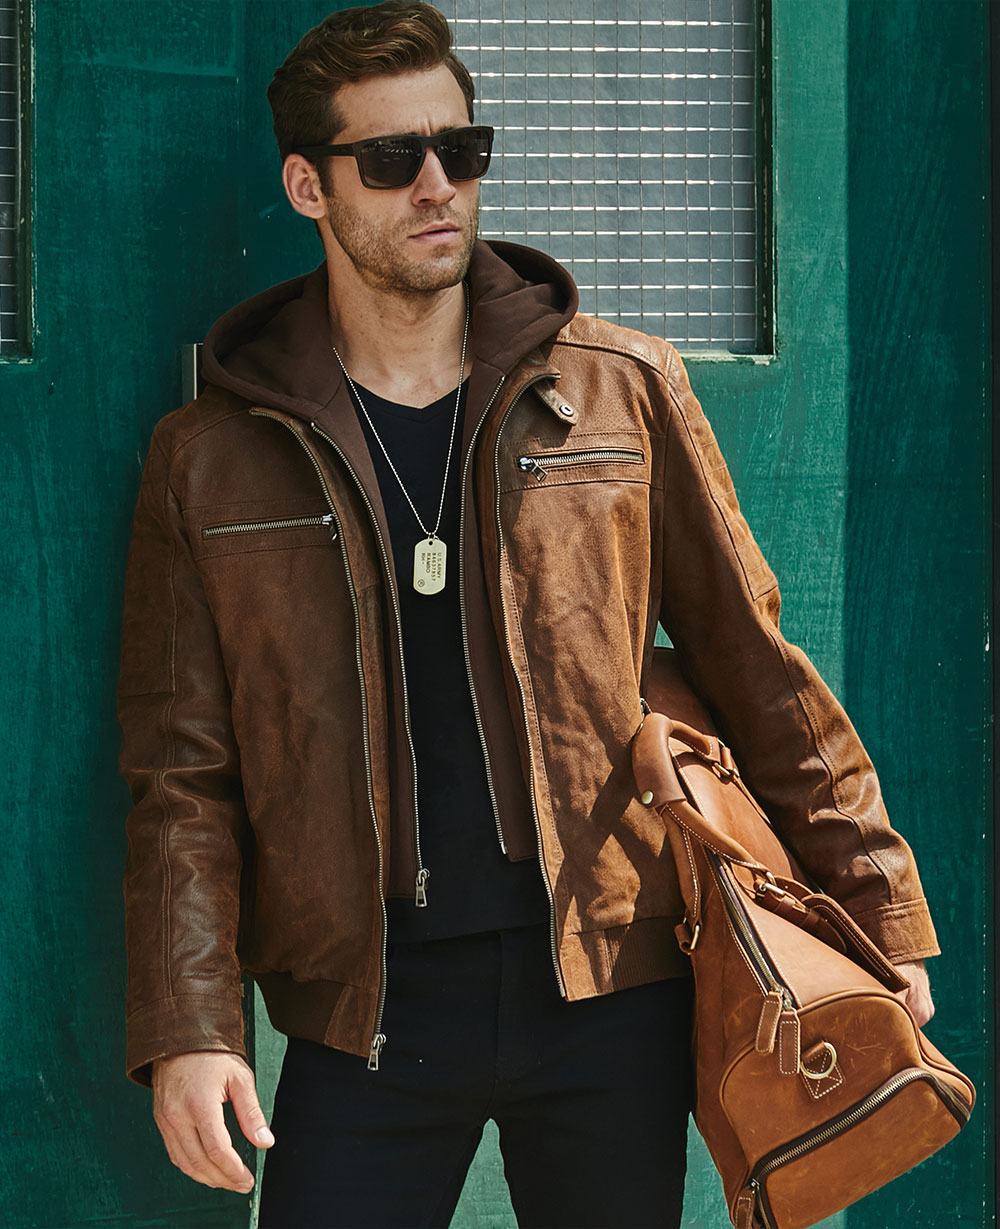 Hef56a18a103c48148d744c6991fbbcd2i New Men's Leather Jacket, Brown Jacket Made Of Genuine Leather With A Removable Hood, Warm Leather Jacket For Men For The Winter